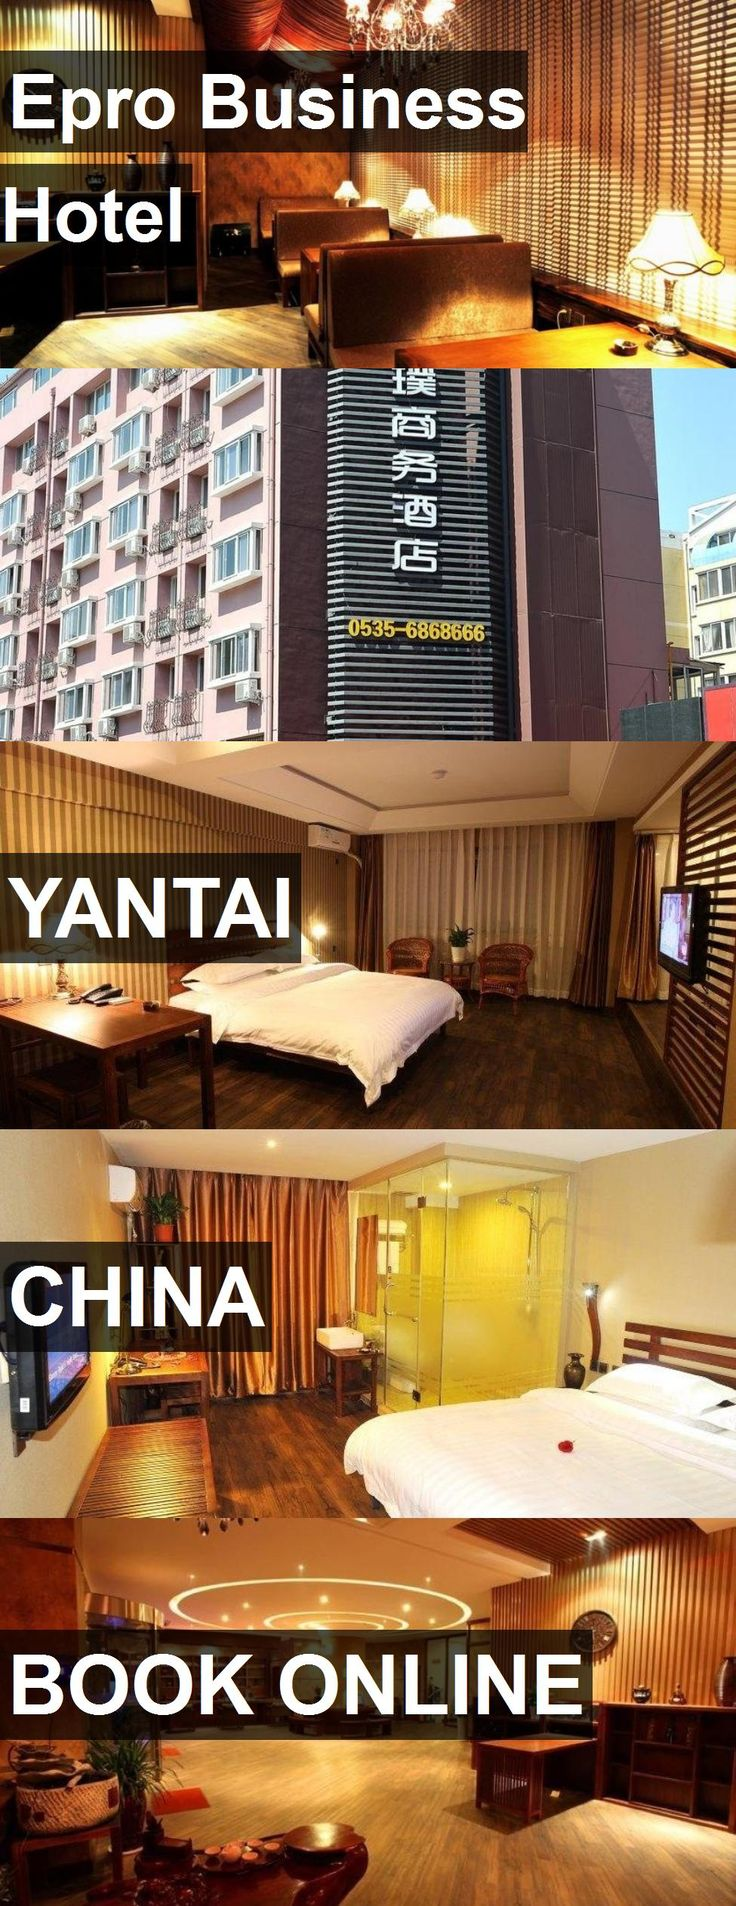 Epro Business Hotel in Yantai, China. For more information, photos, reviews and best prices please follow the link. #China #Yantai #travel #vacation #hotel